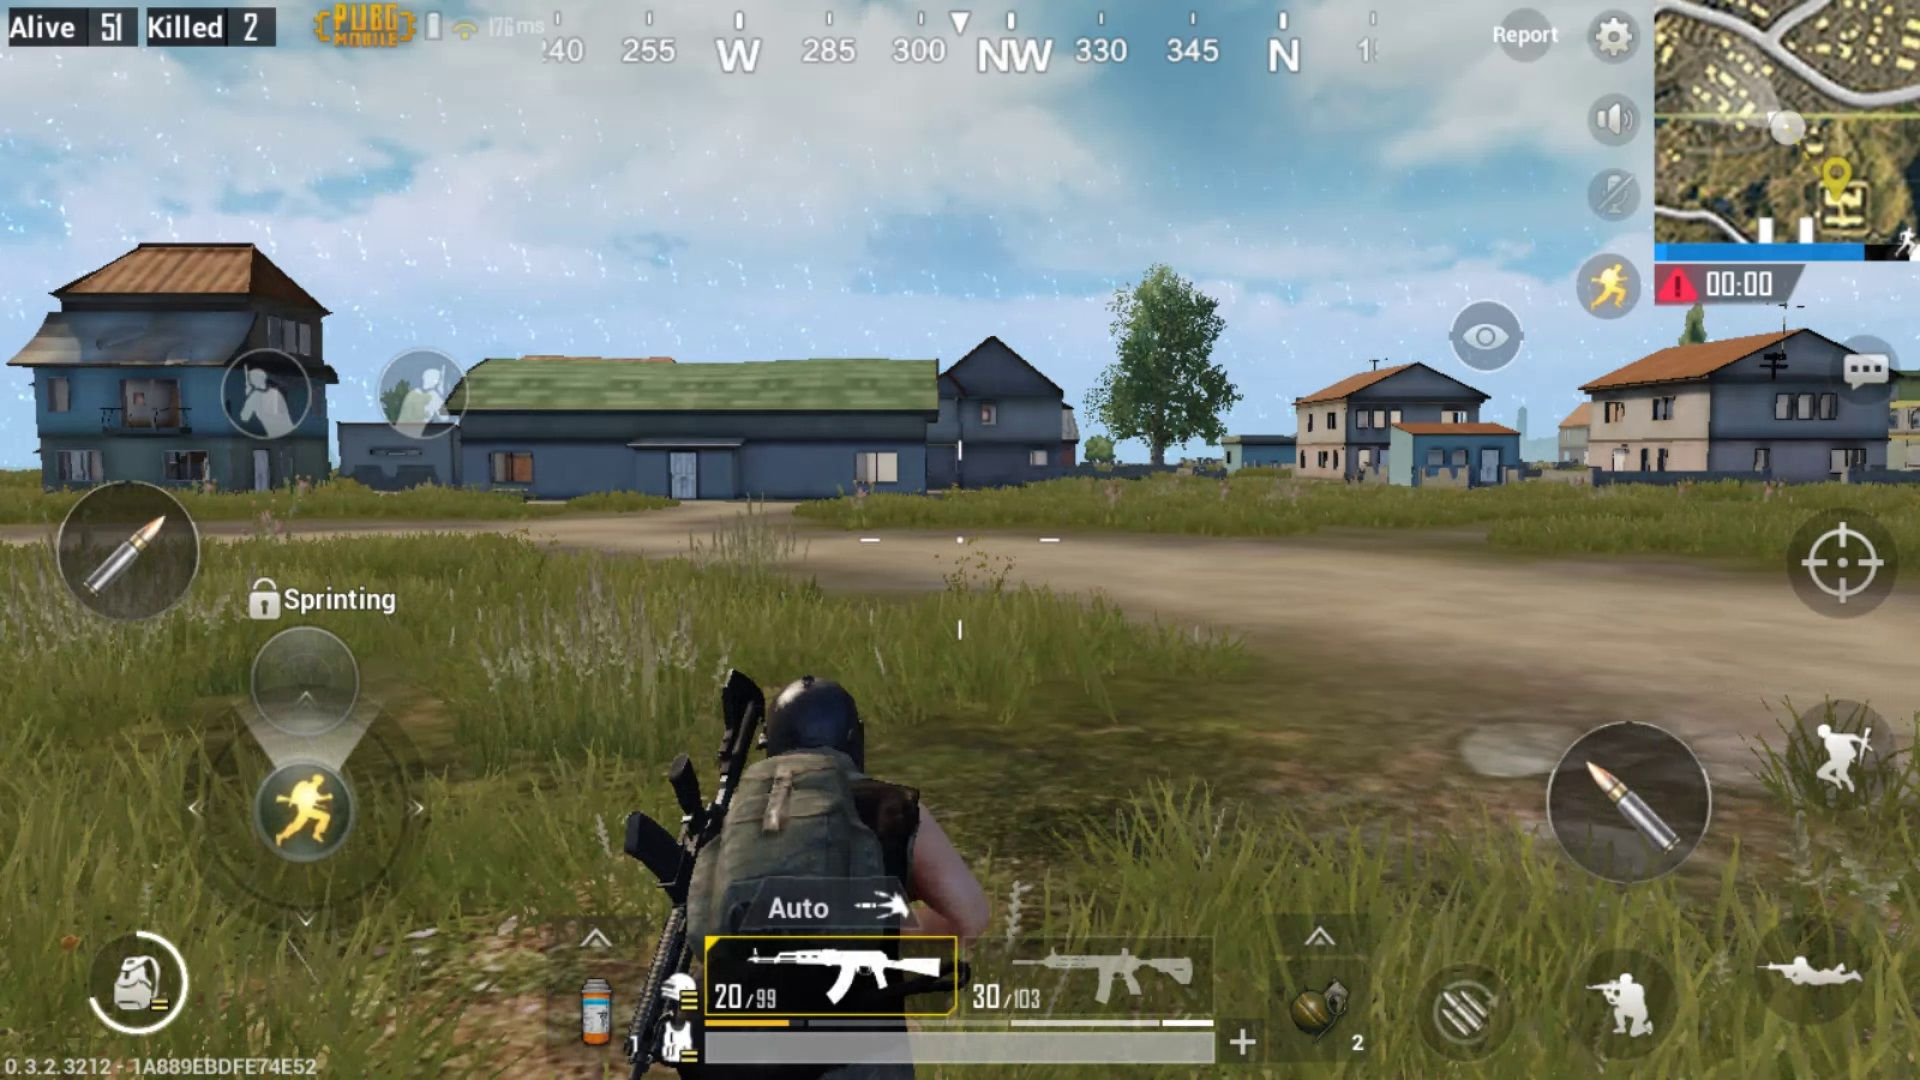 Want to be a PUBG Mobile beta tester? This is how